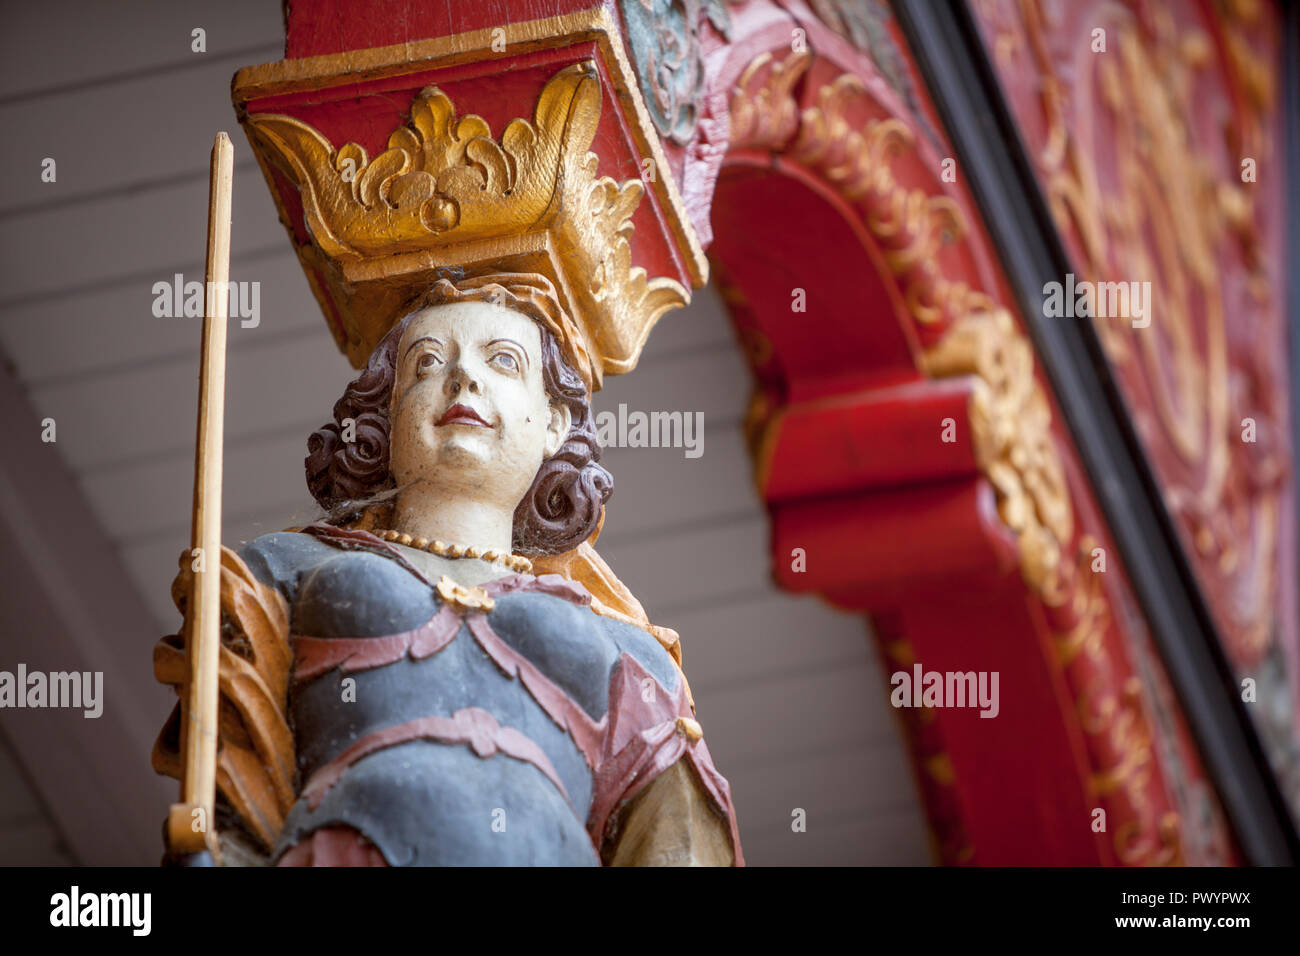 Woman with sword and libra, City hall stairs, symbol for justice, historic town hall, Duderstadt, Lower Saxony, Germany, Europe - Stock Image